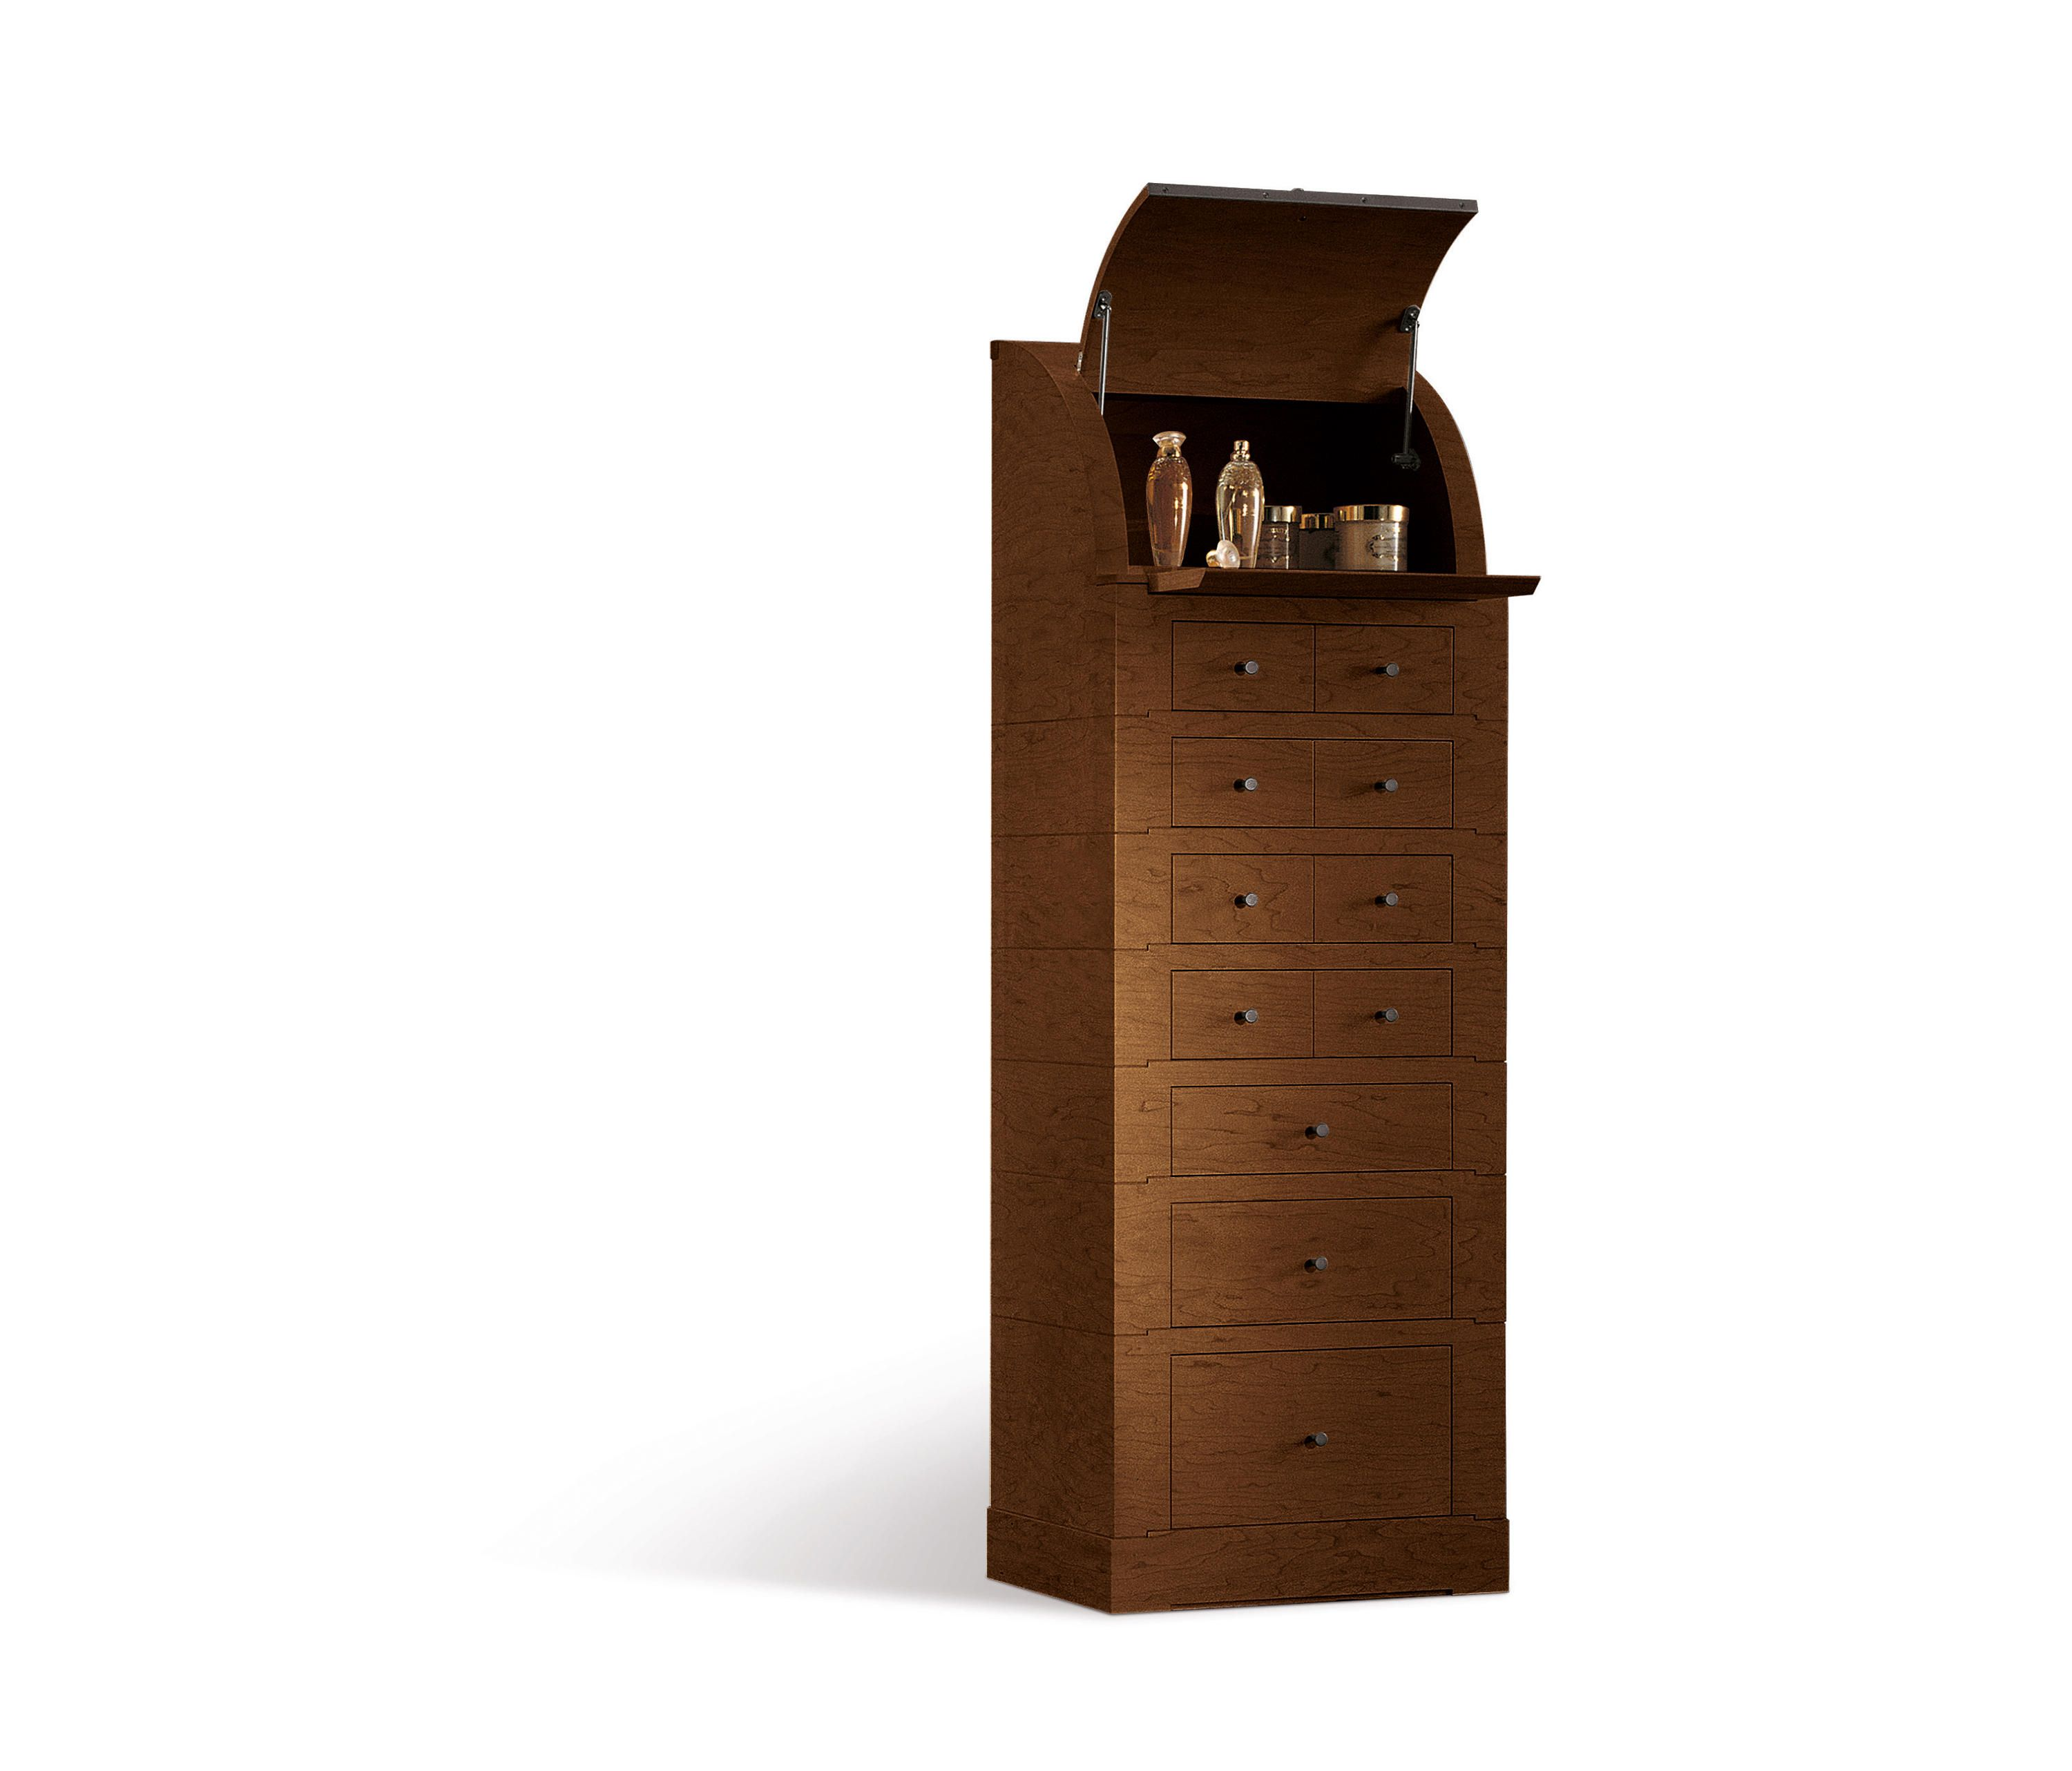 Tall chest of drawers with the plywood frame in walnut canaletto wood veneer. It is equipped with eleven drawers, an upper compartment with flap door and..